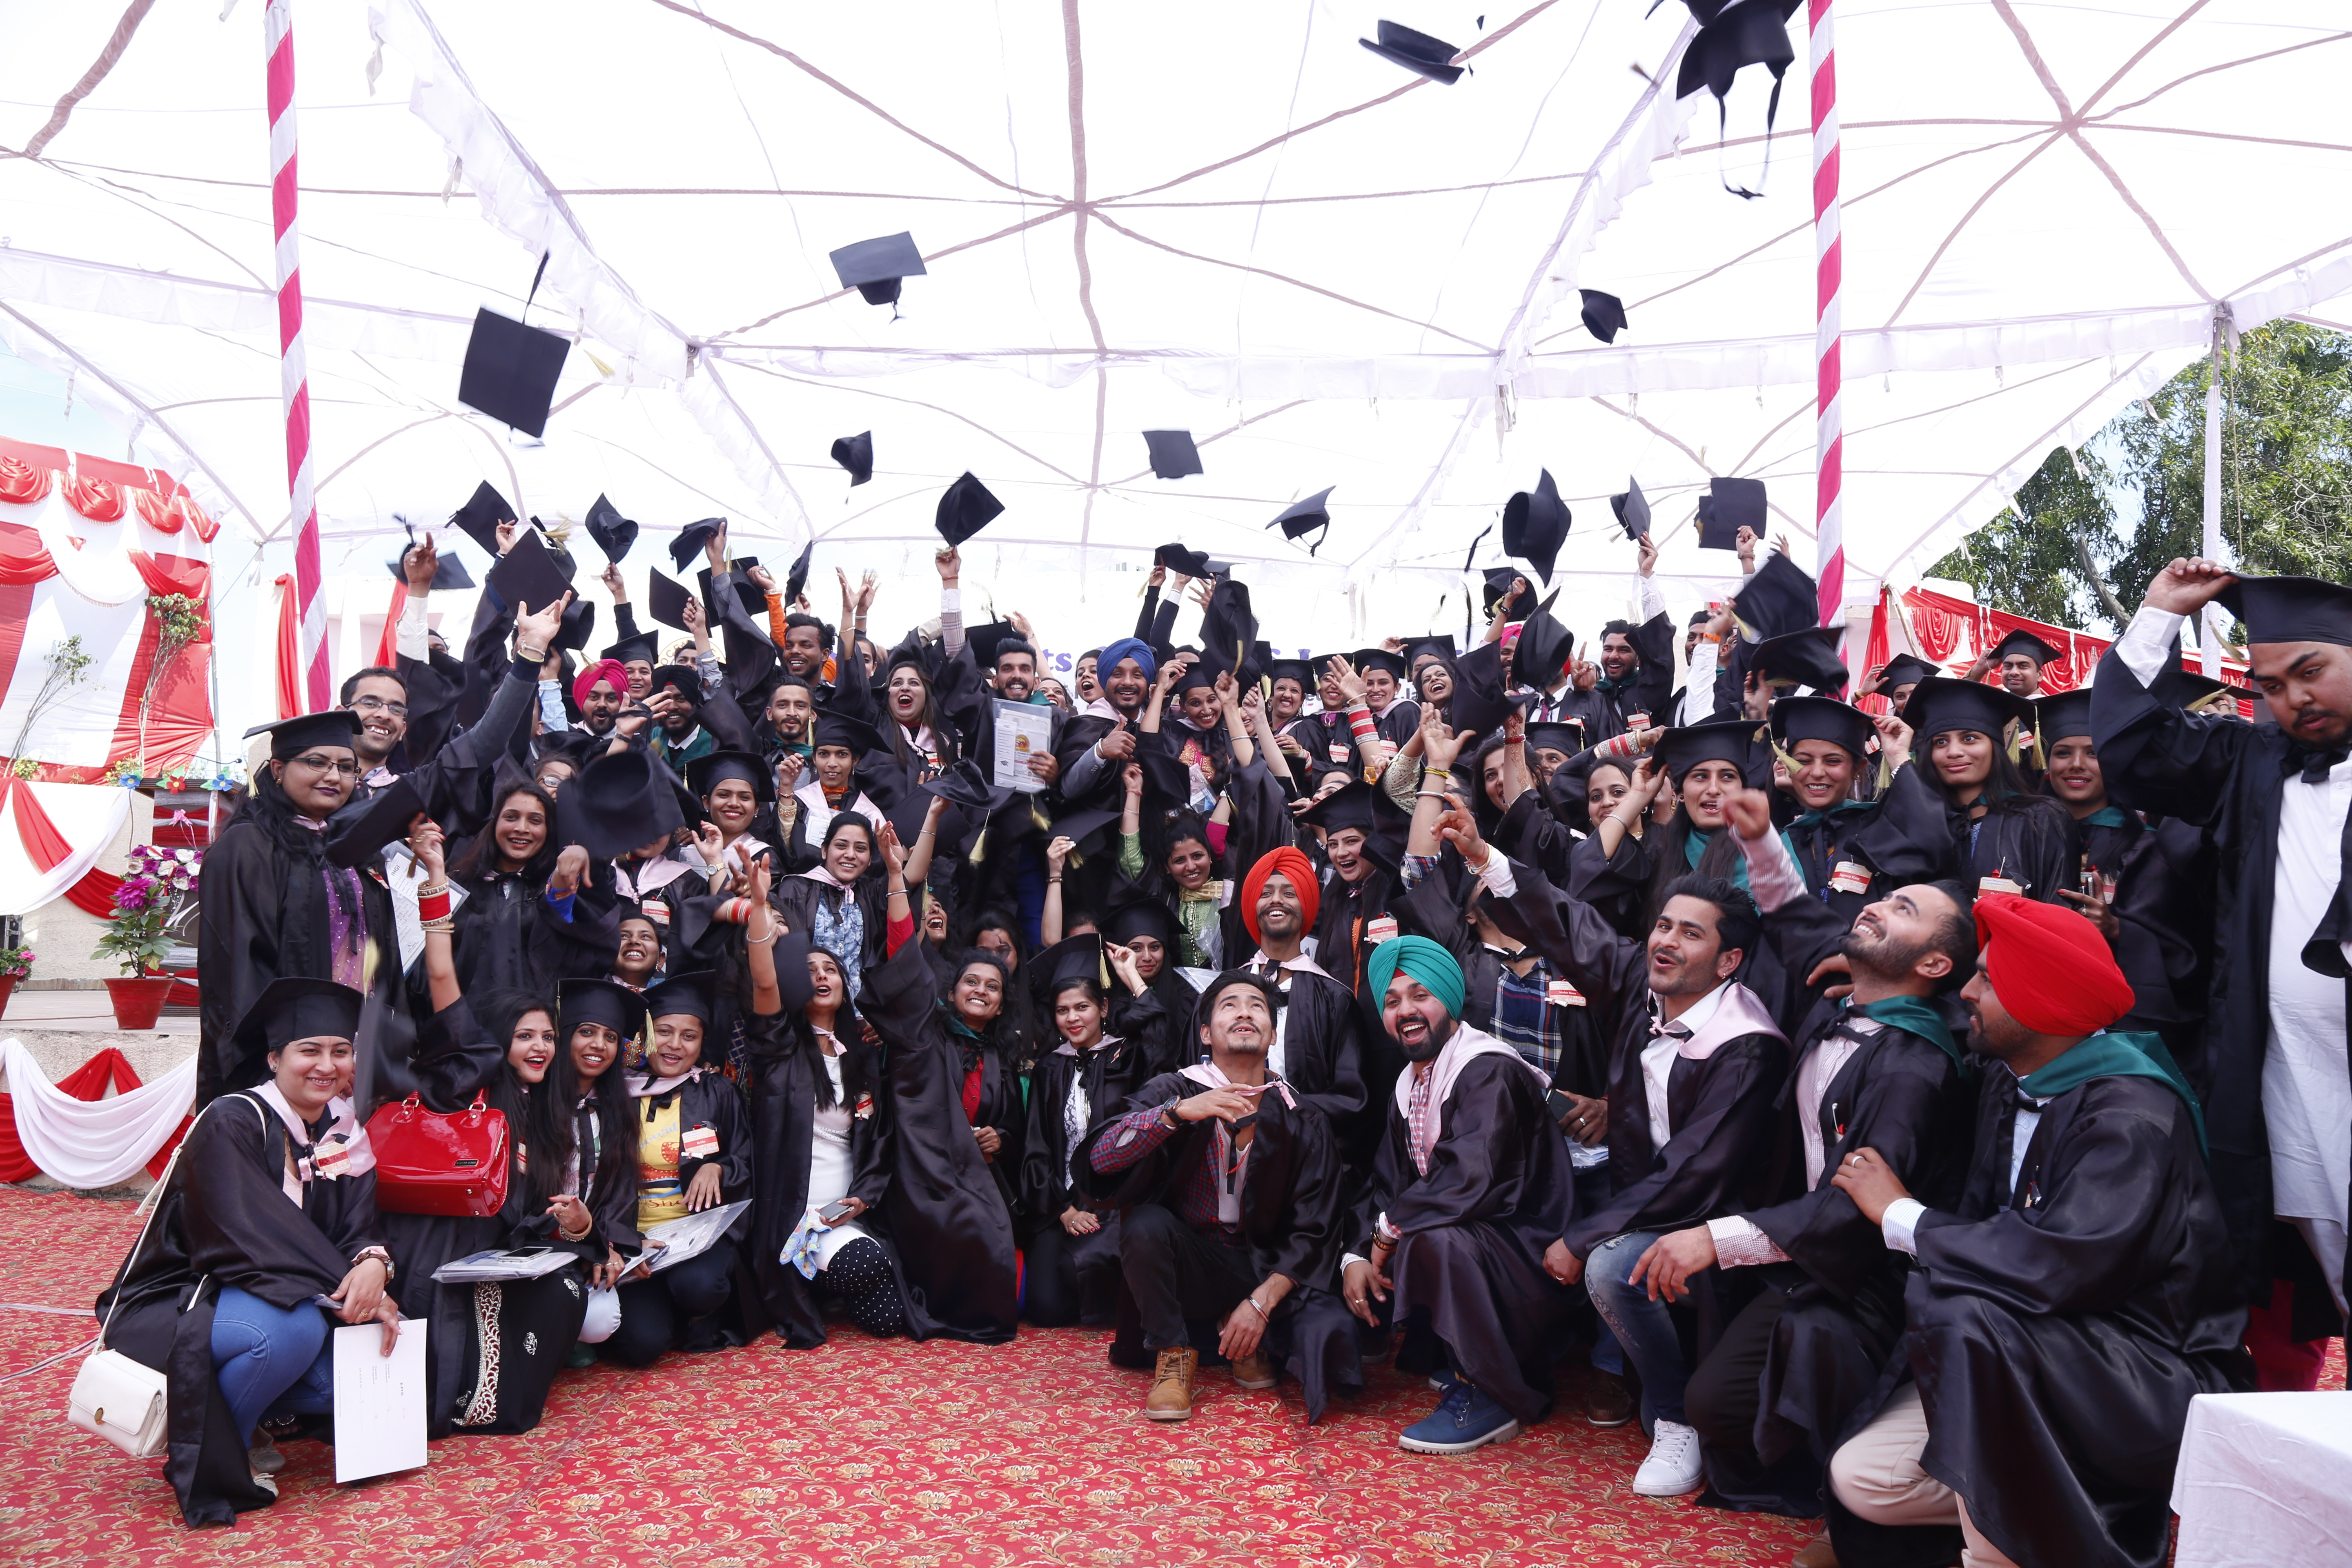 CONVOCATION AT INNOCENT HEARTS GROUP OF INSTITUTIONS